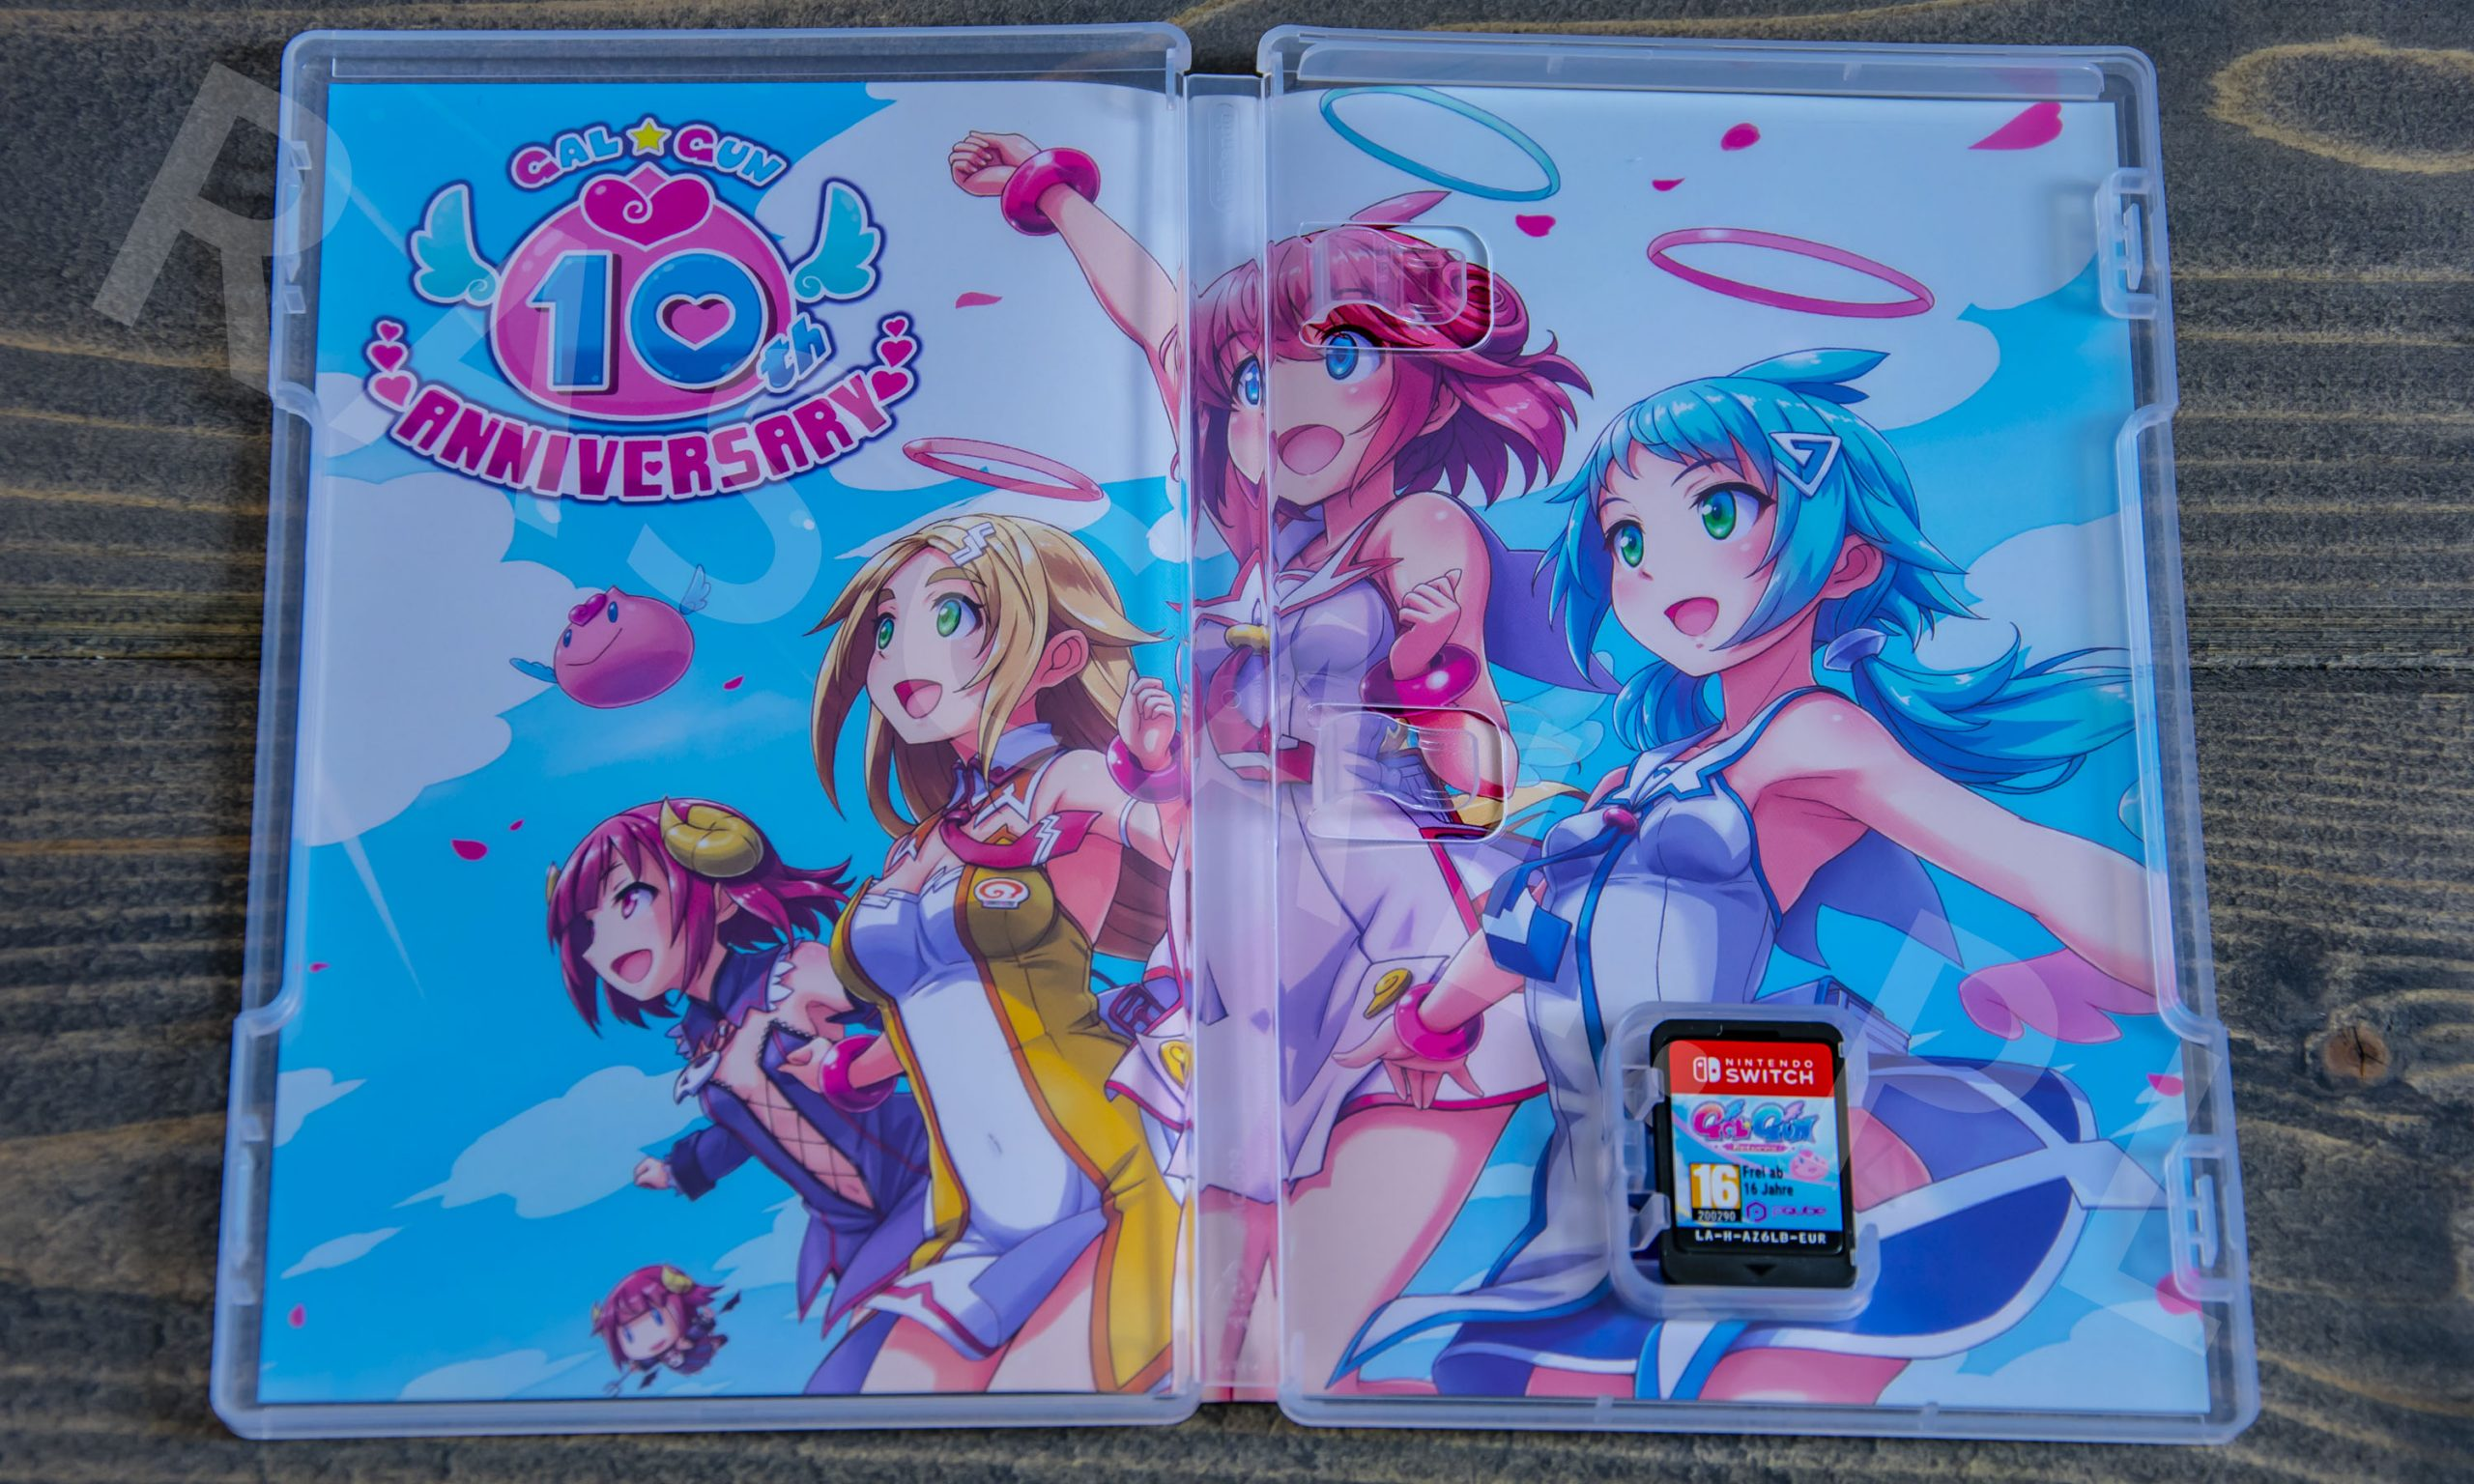 Gal*Gun Returns Collector's Edition - unboxing - rascal.pl